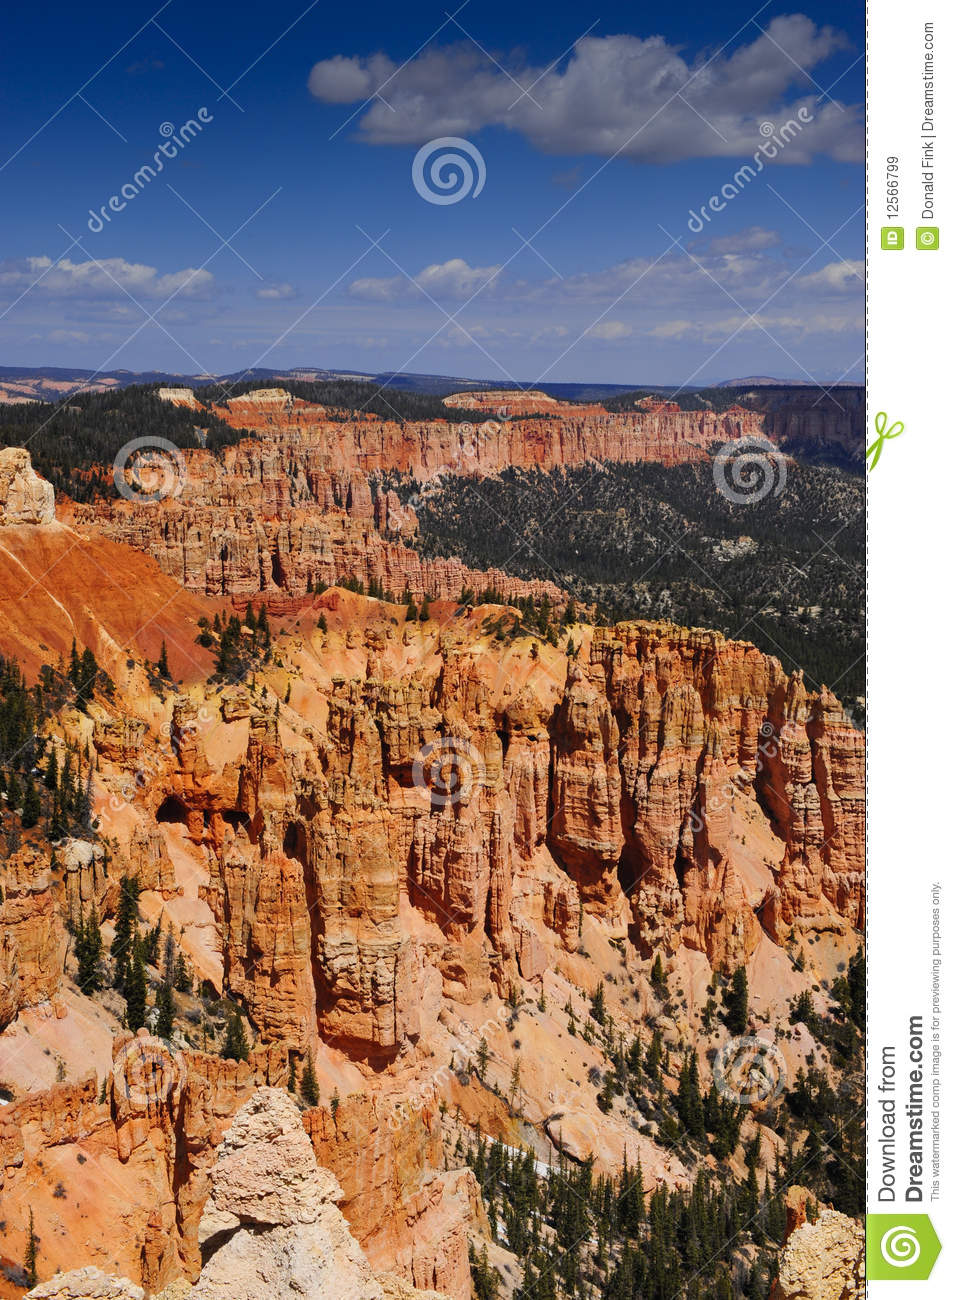 bryce canyon national park black dating site 100 years of national park service celebrates the story of how the national park system became (dating from the black canyon of the.